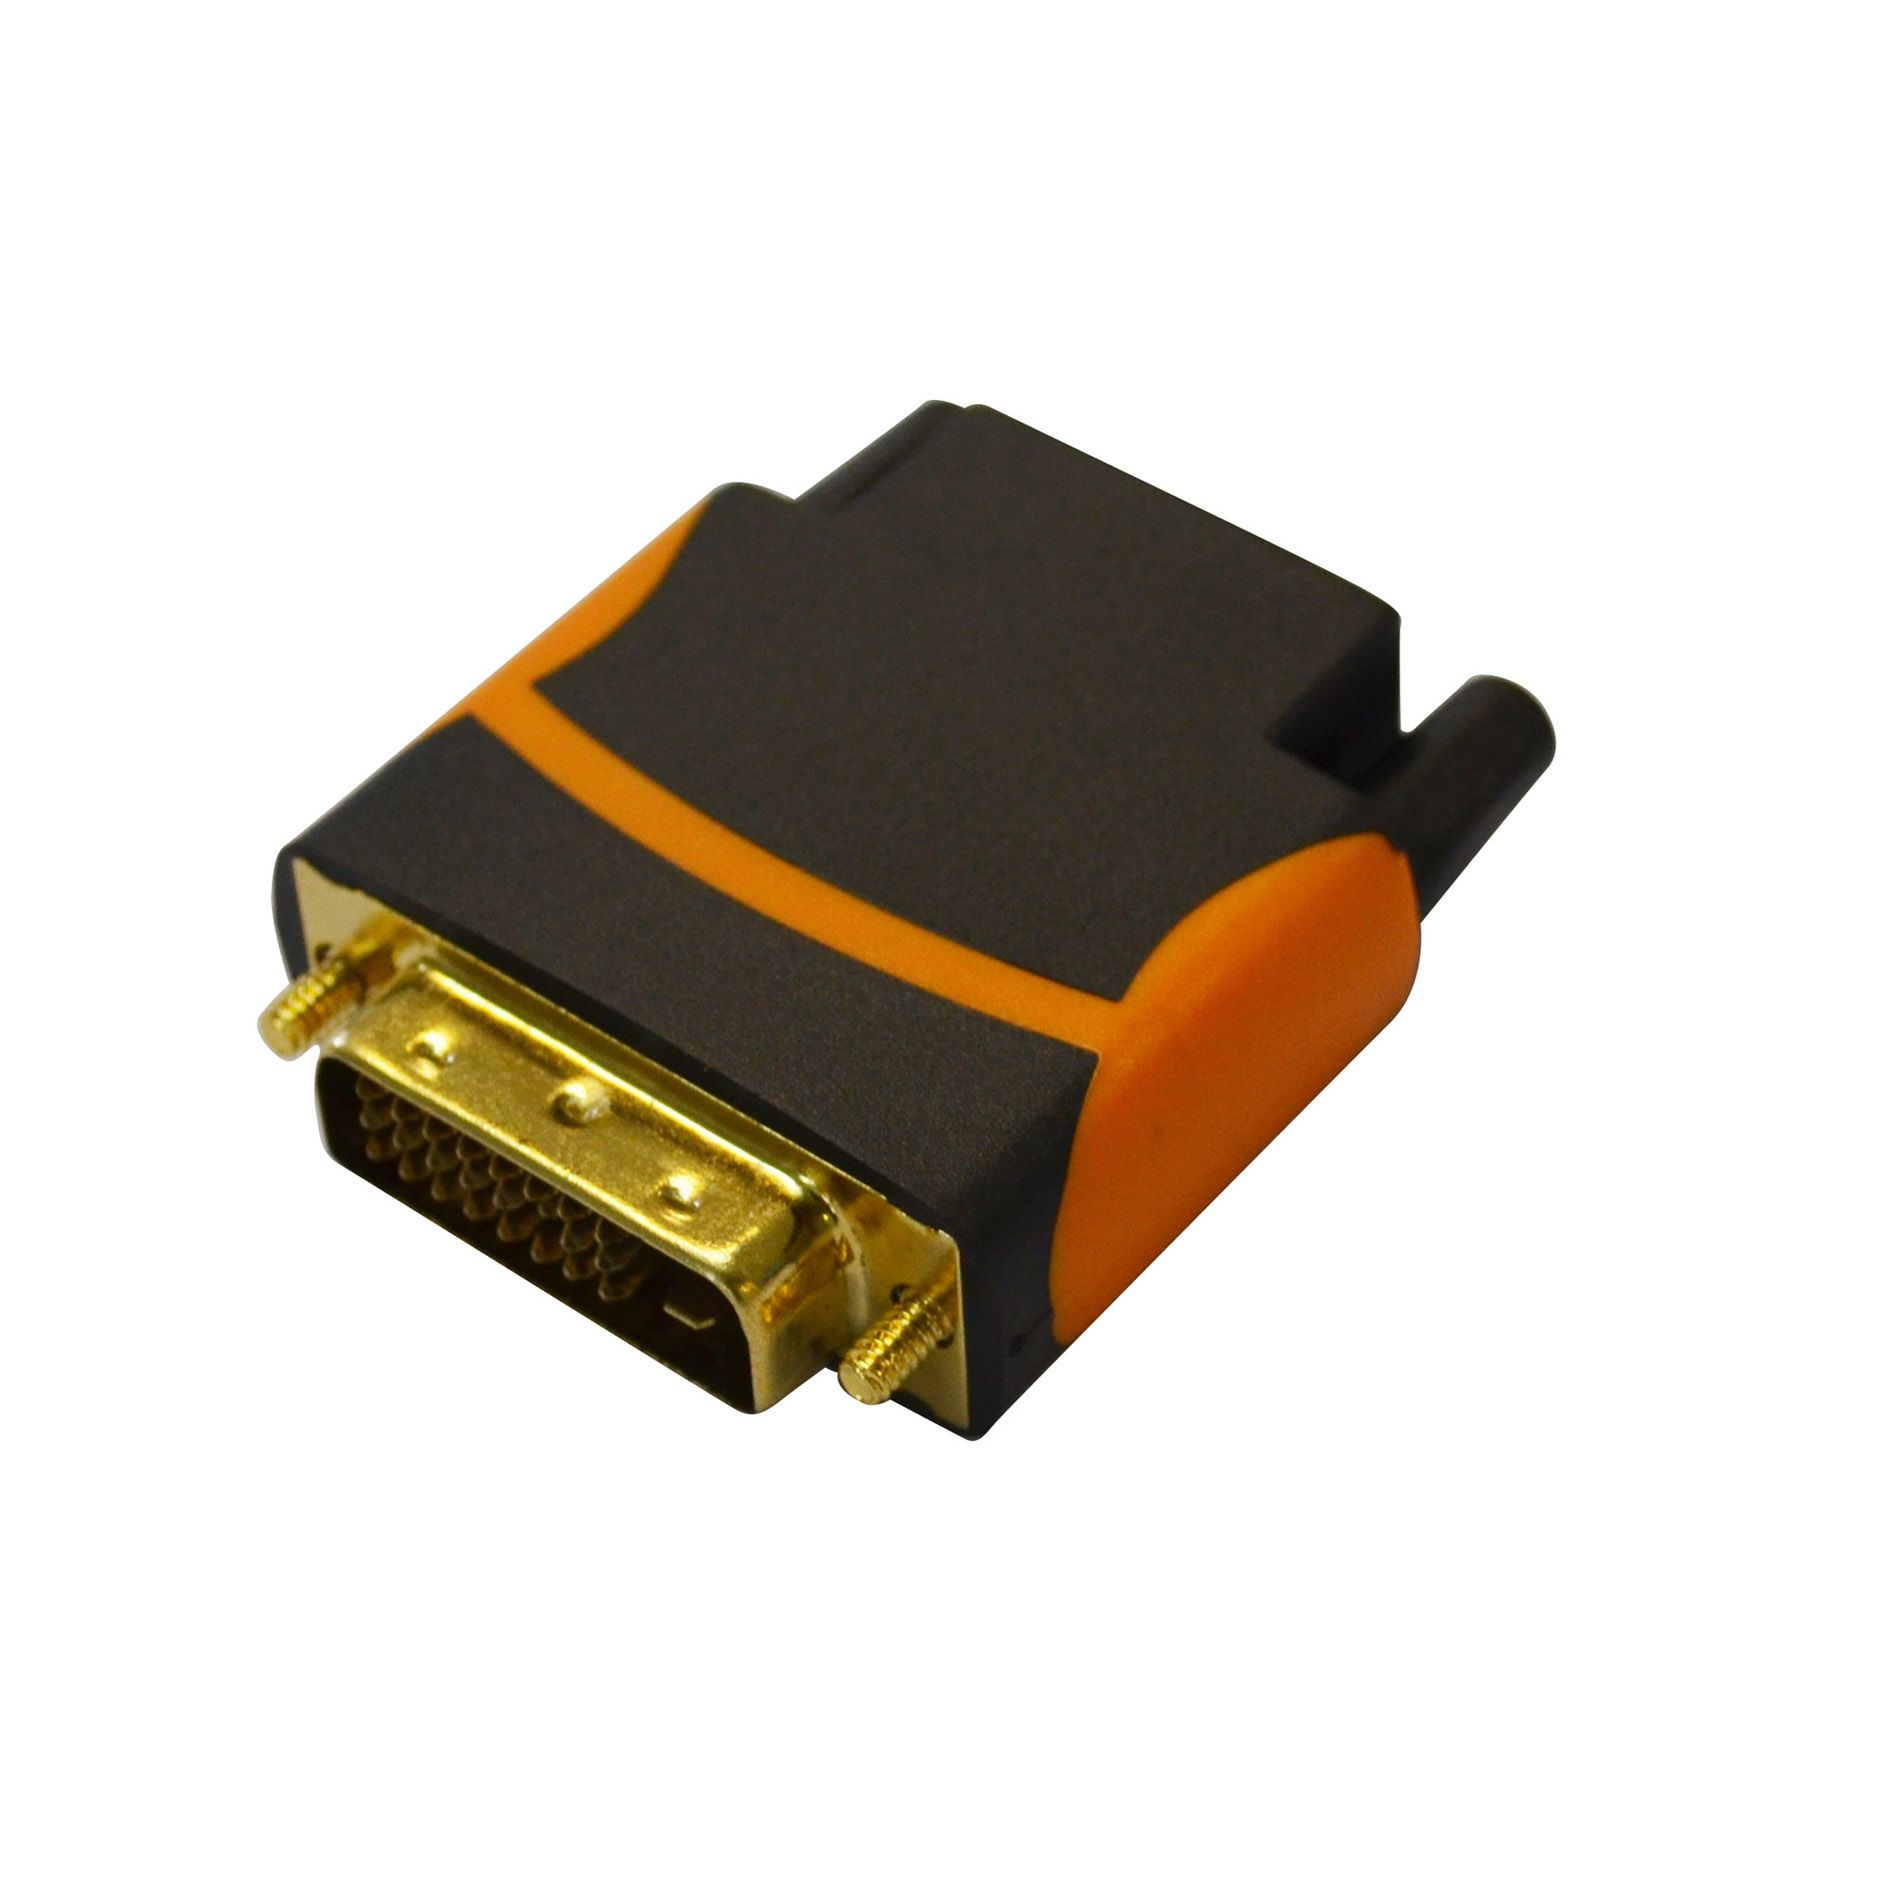 Alphaline™ HDMI to DVI Adapter